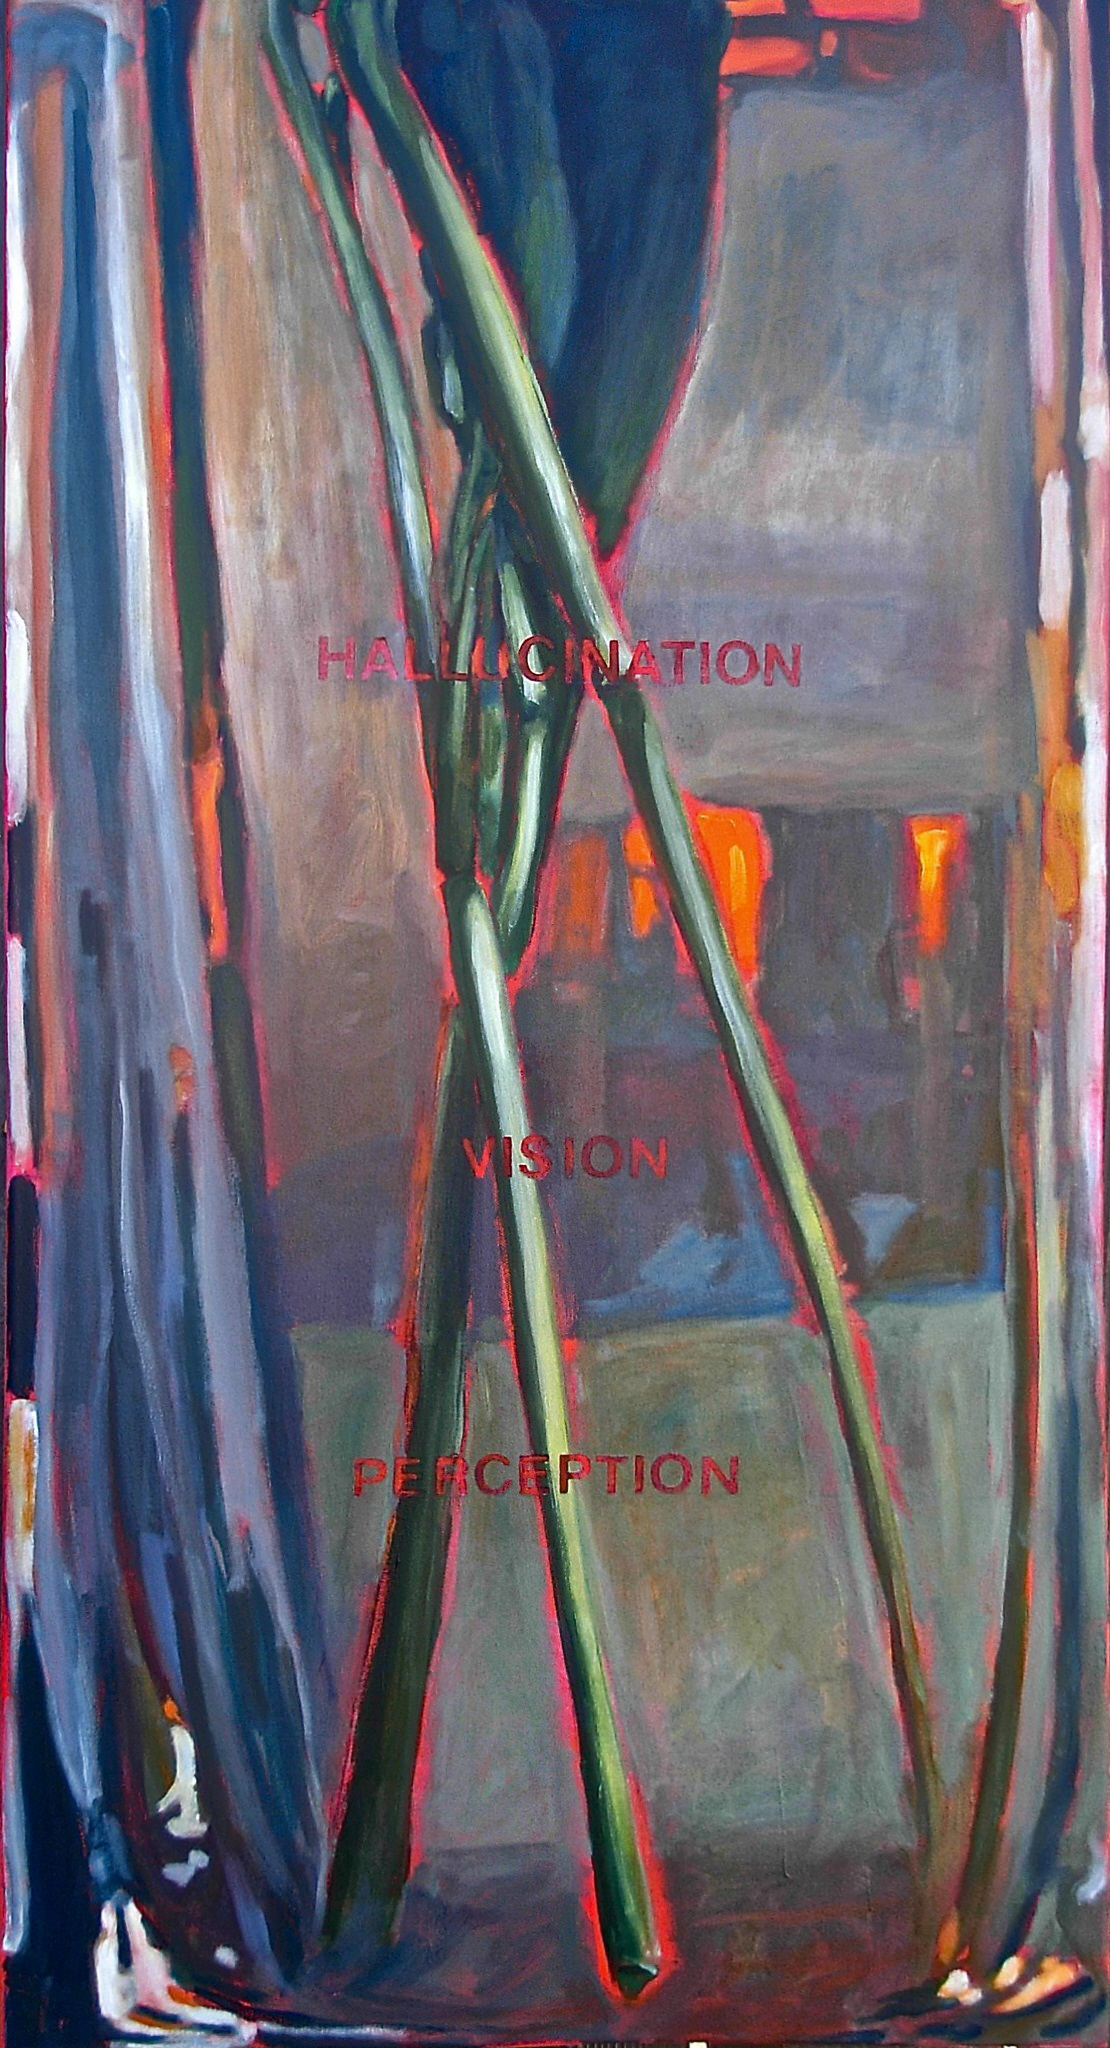 Hallucination, Vision, Perception